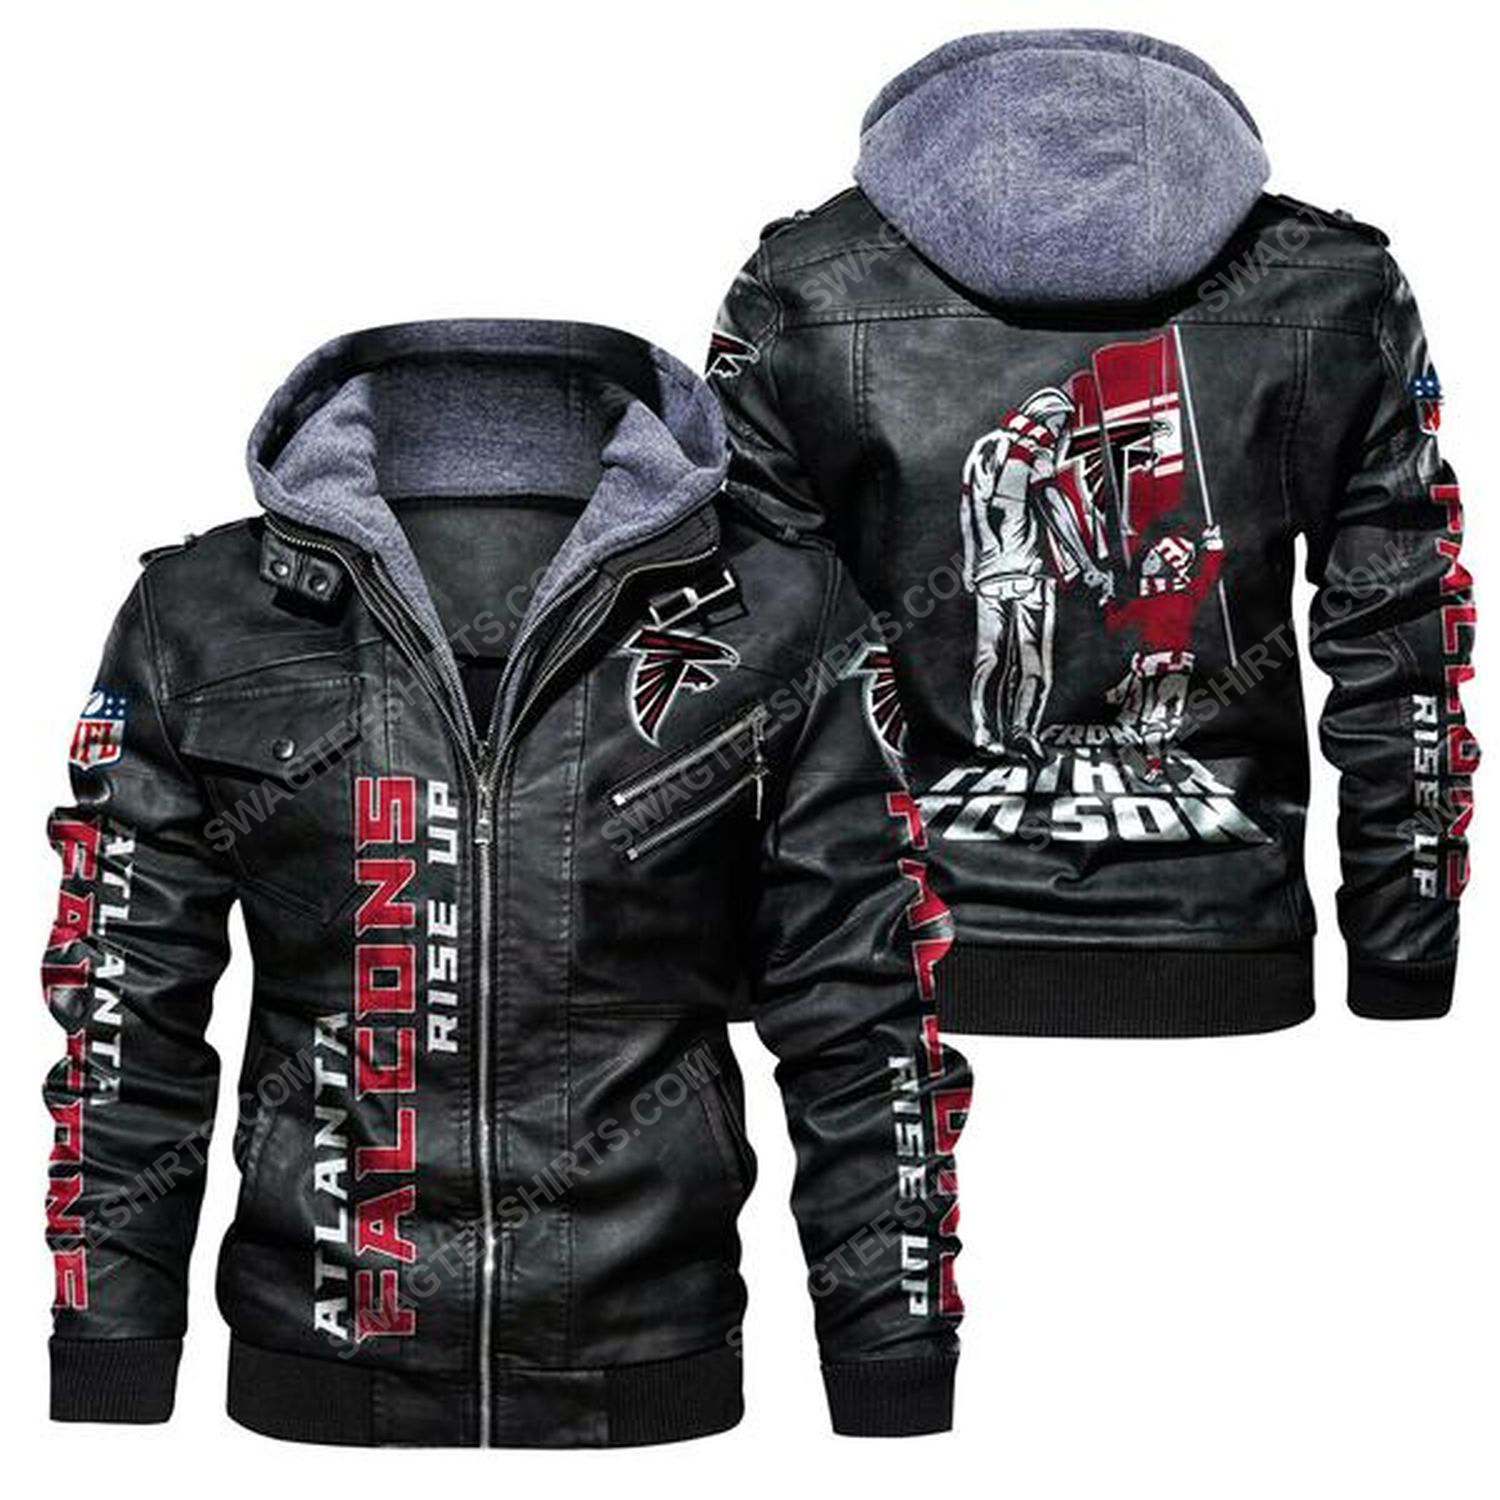 National football league atlanta falcons from father to son leather jacket - black